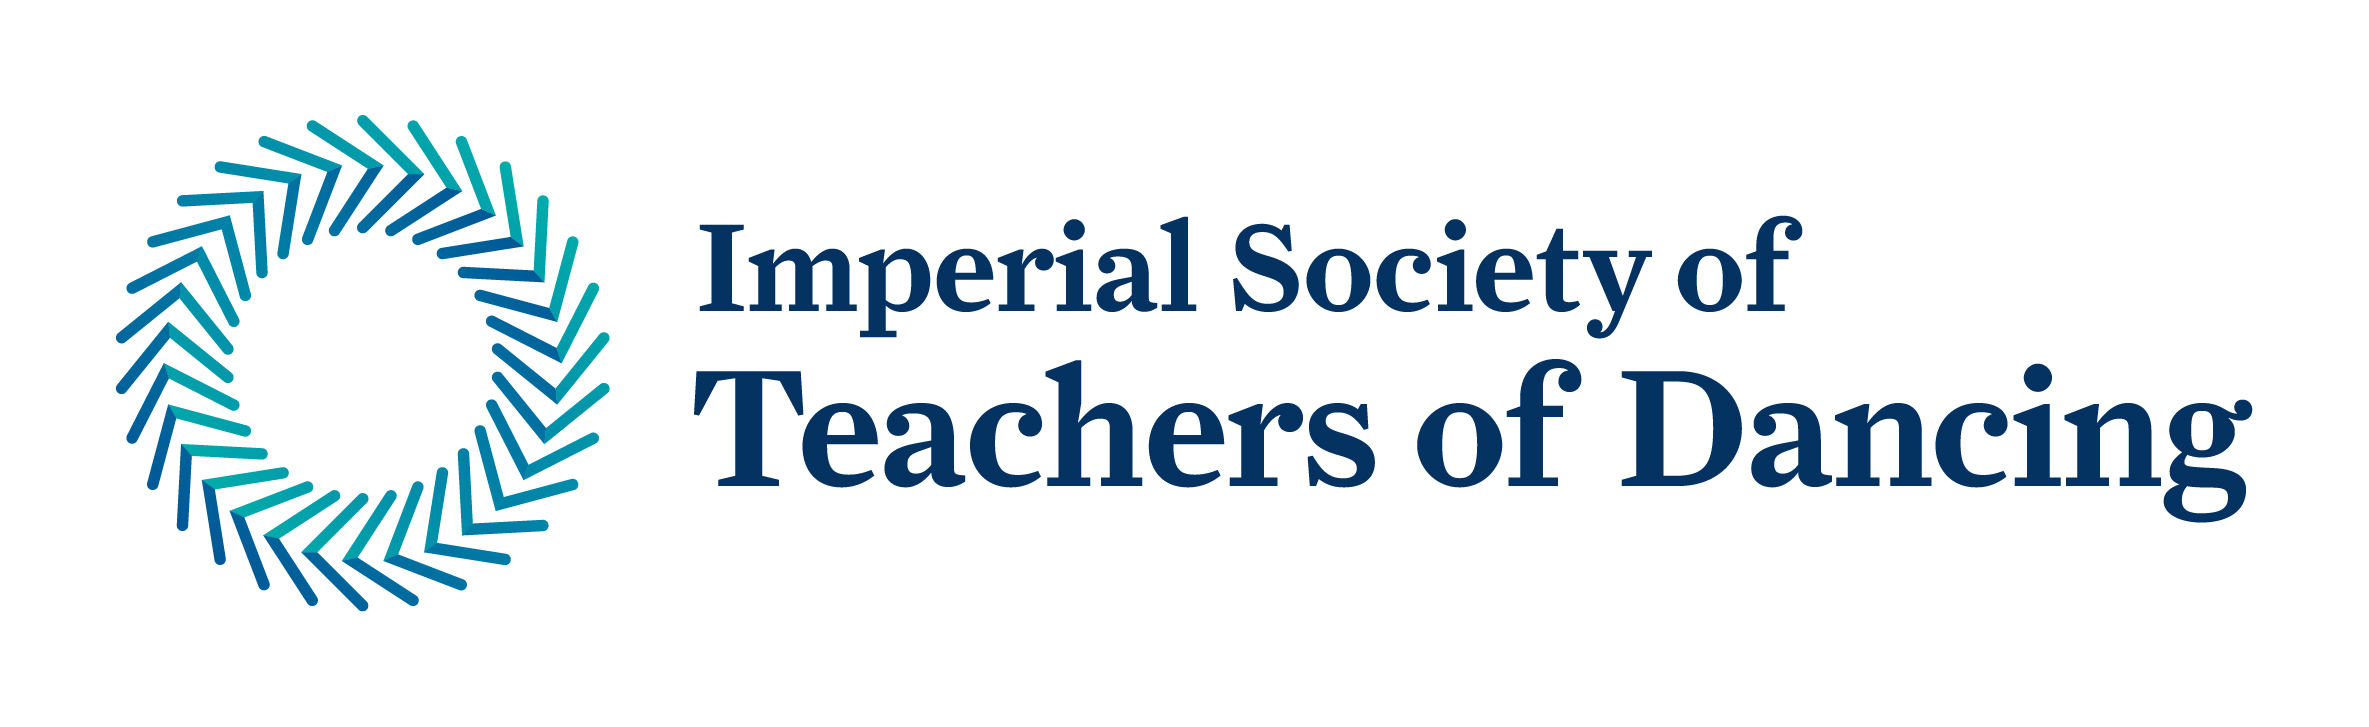 ISTD - Imperial Society of Teachers of Dancing